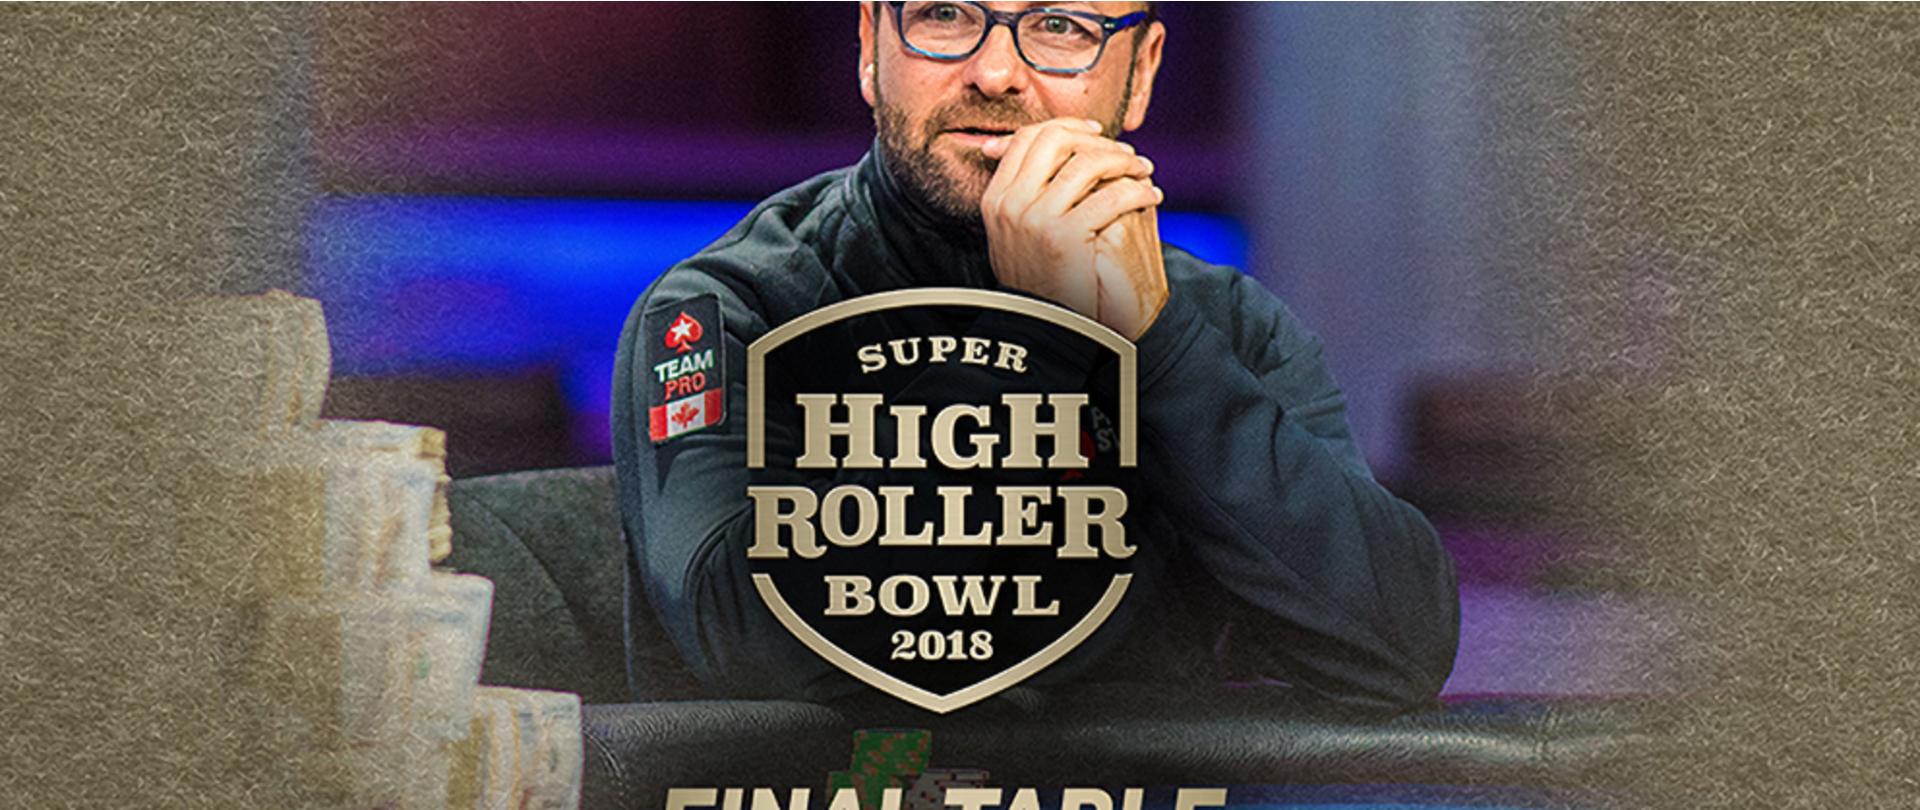 Super High Roller Bowl | Final Table